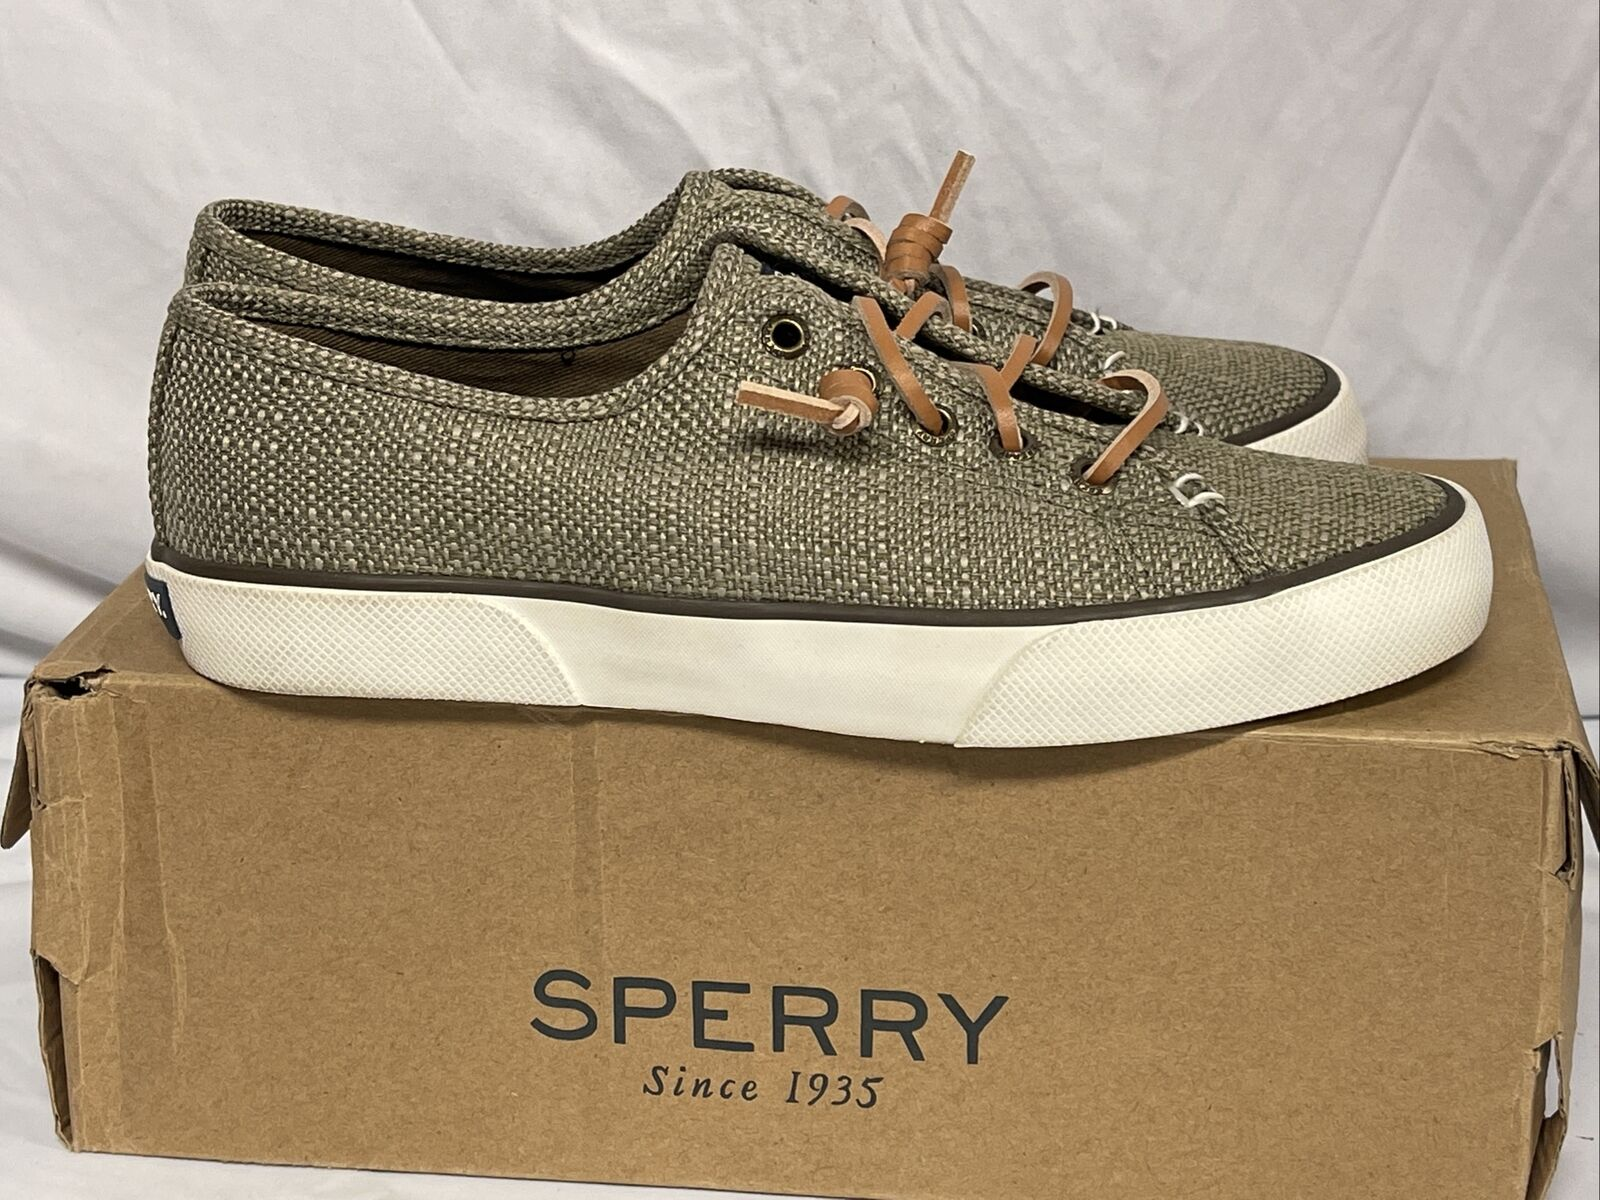 Sperry Top-Sider Women's Pier View Taupe Boat Shoes STS80167 NEW Size 6.5